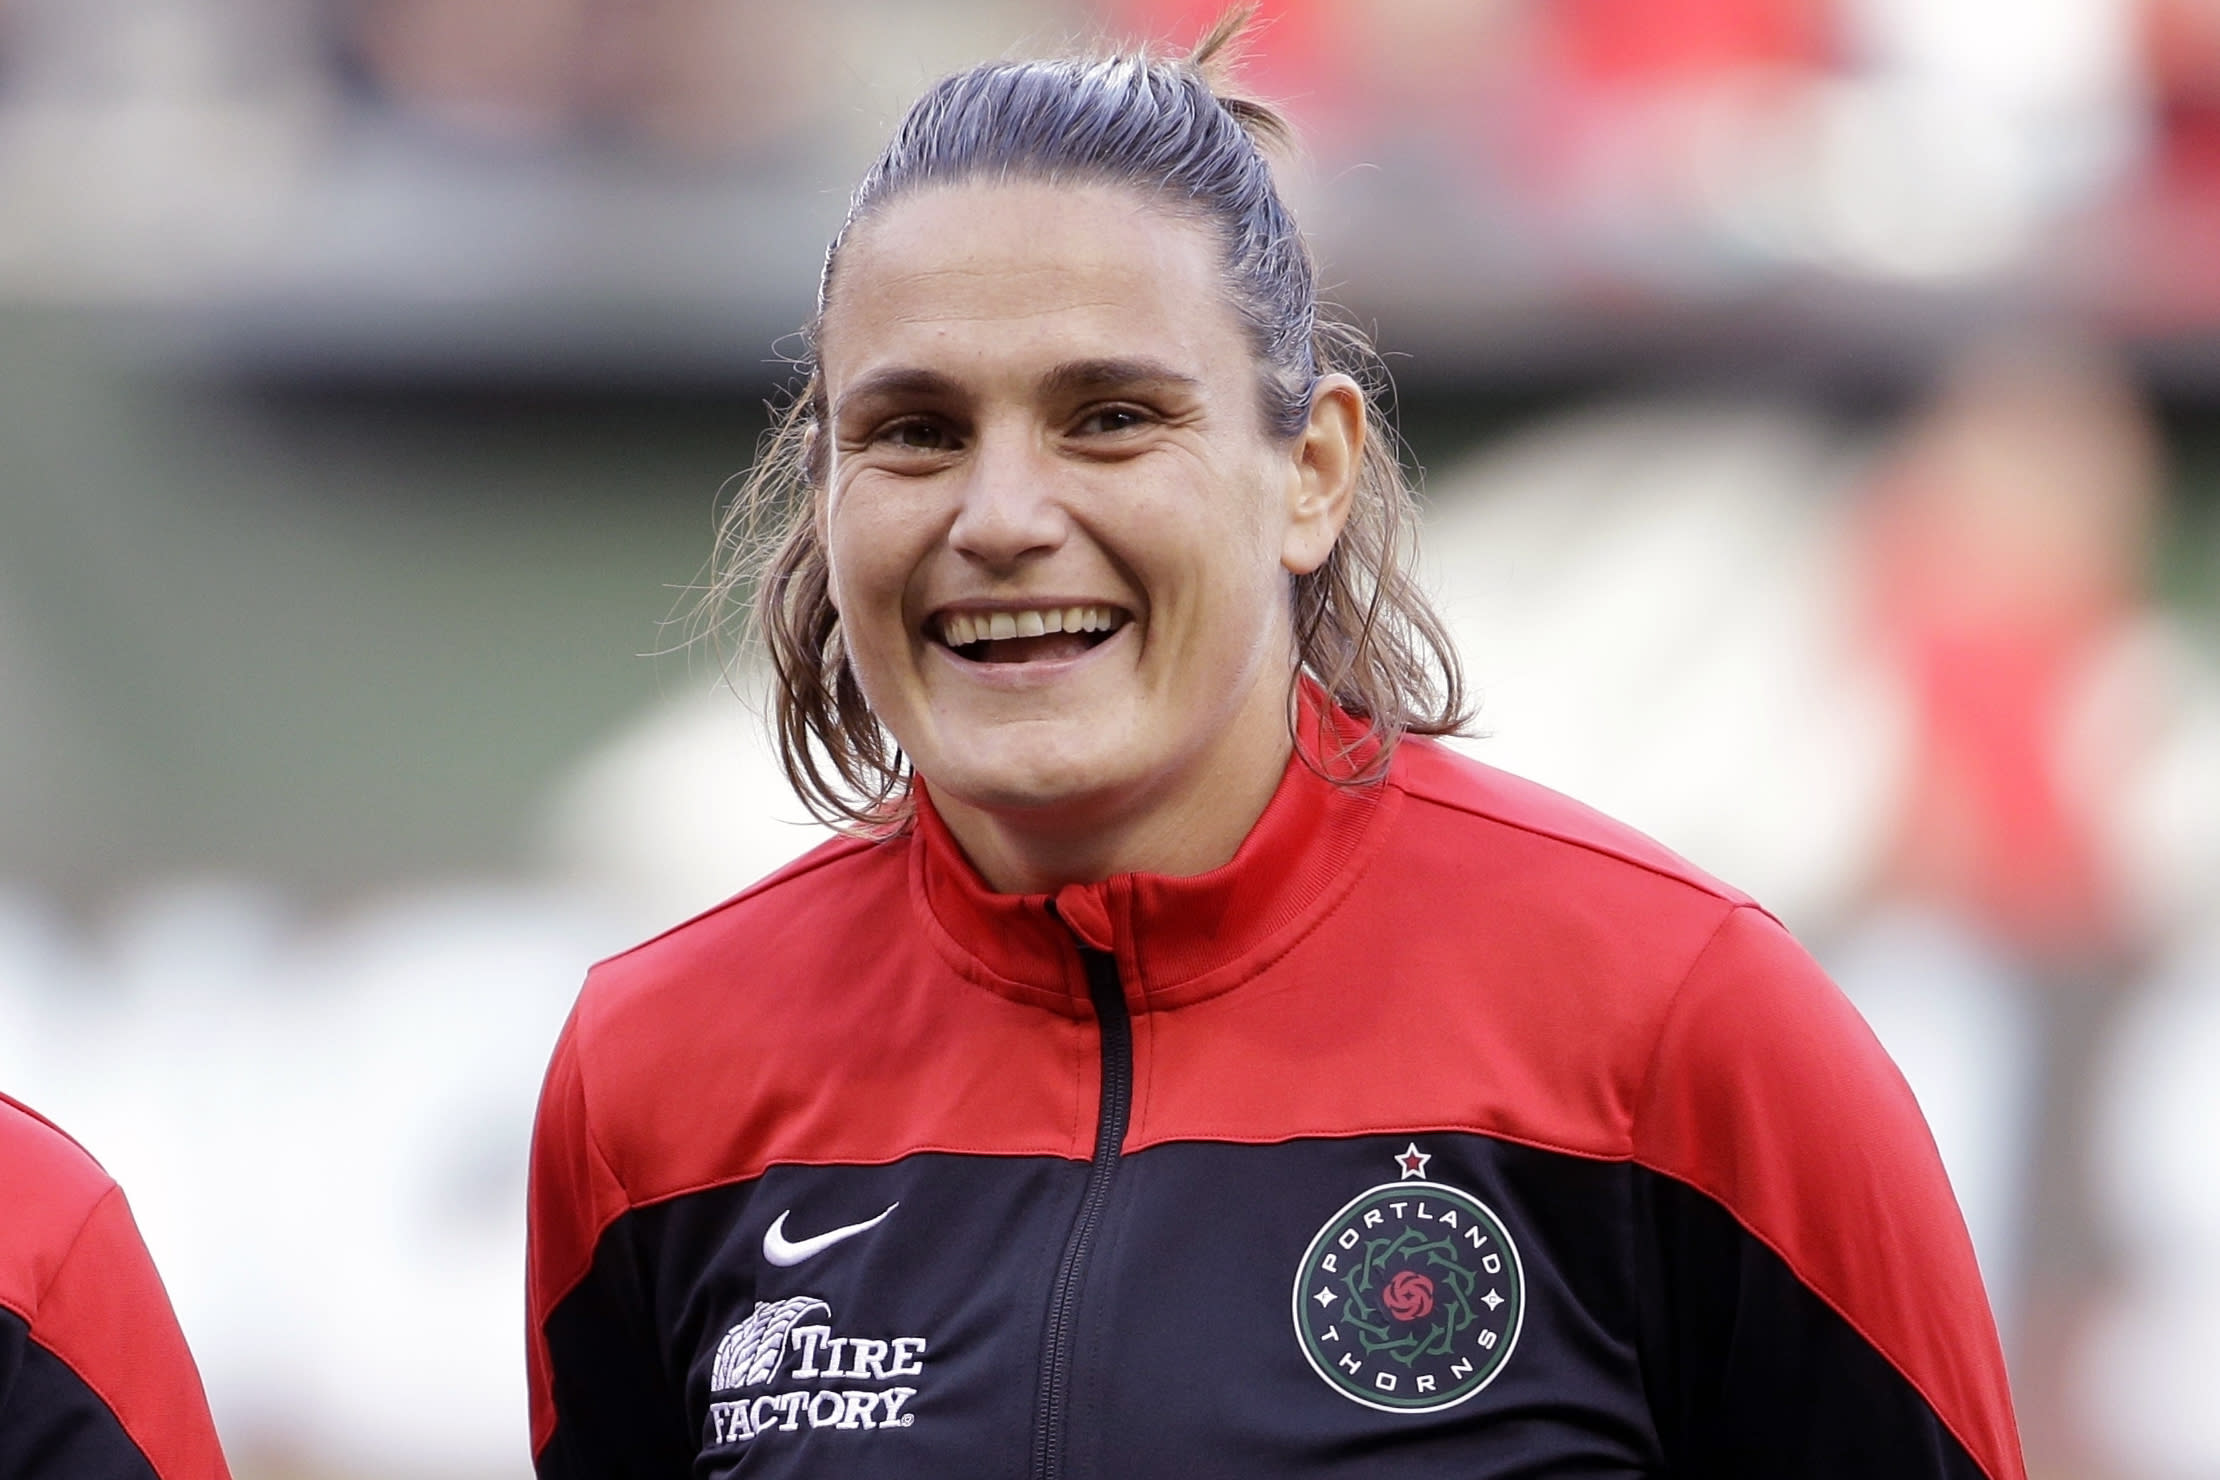 FILE - This is an Aug. 30, 2015, file photo showing Portland Thorns' Nadine Angerer before an NWSL soccer match against the Washington Spirit in Portland, Ore. Former German national team goalkeeper Nadine Angerer has suddenly and unexpectedly found herself on the bench for the Portland Thorns, poised to play as the team navigates injuries at the Challenge Cup tournament. The 42-year-old goalkeeping coach for the Thorns retired from playing five years ago. (AP Photo/Don Ryan, File)